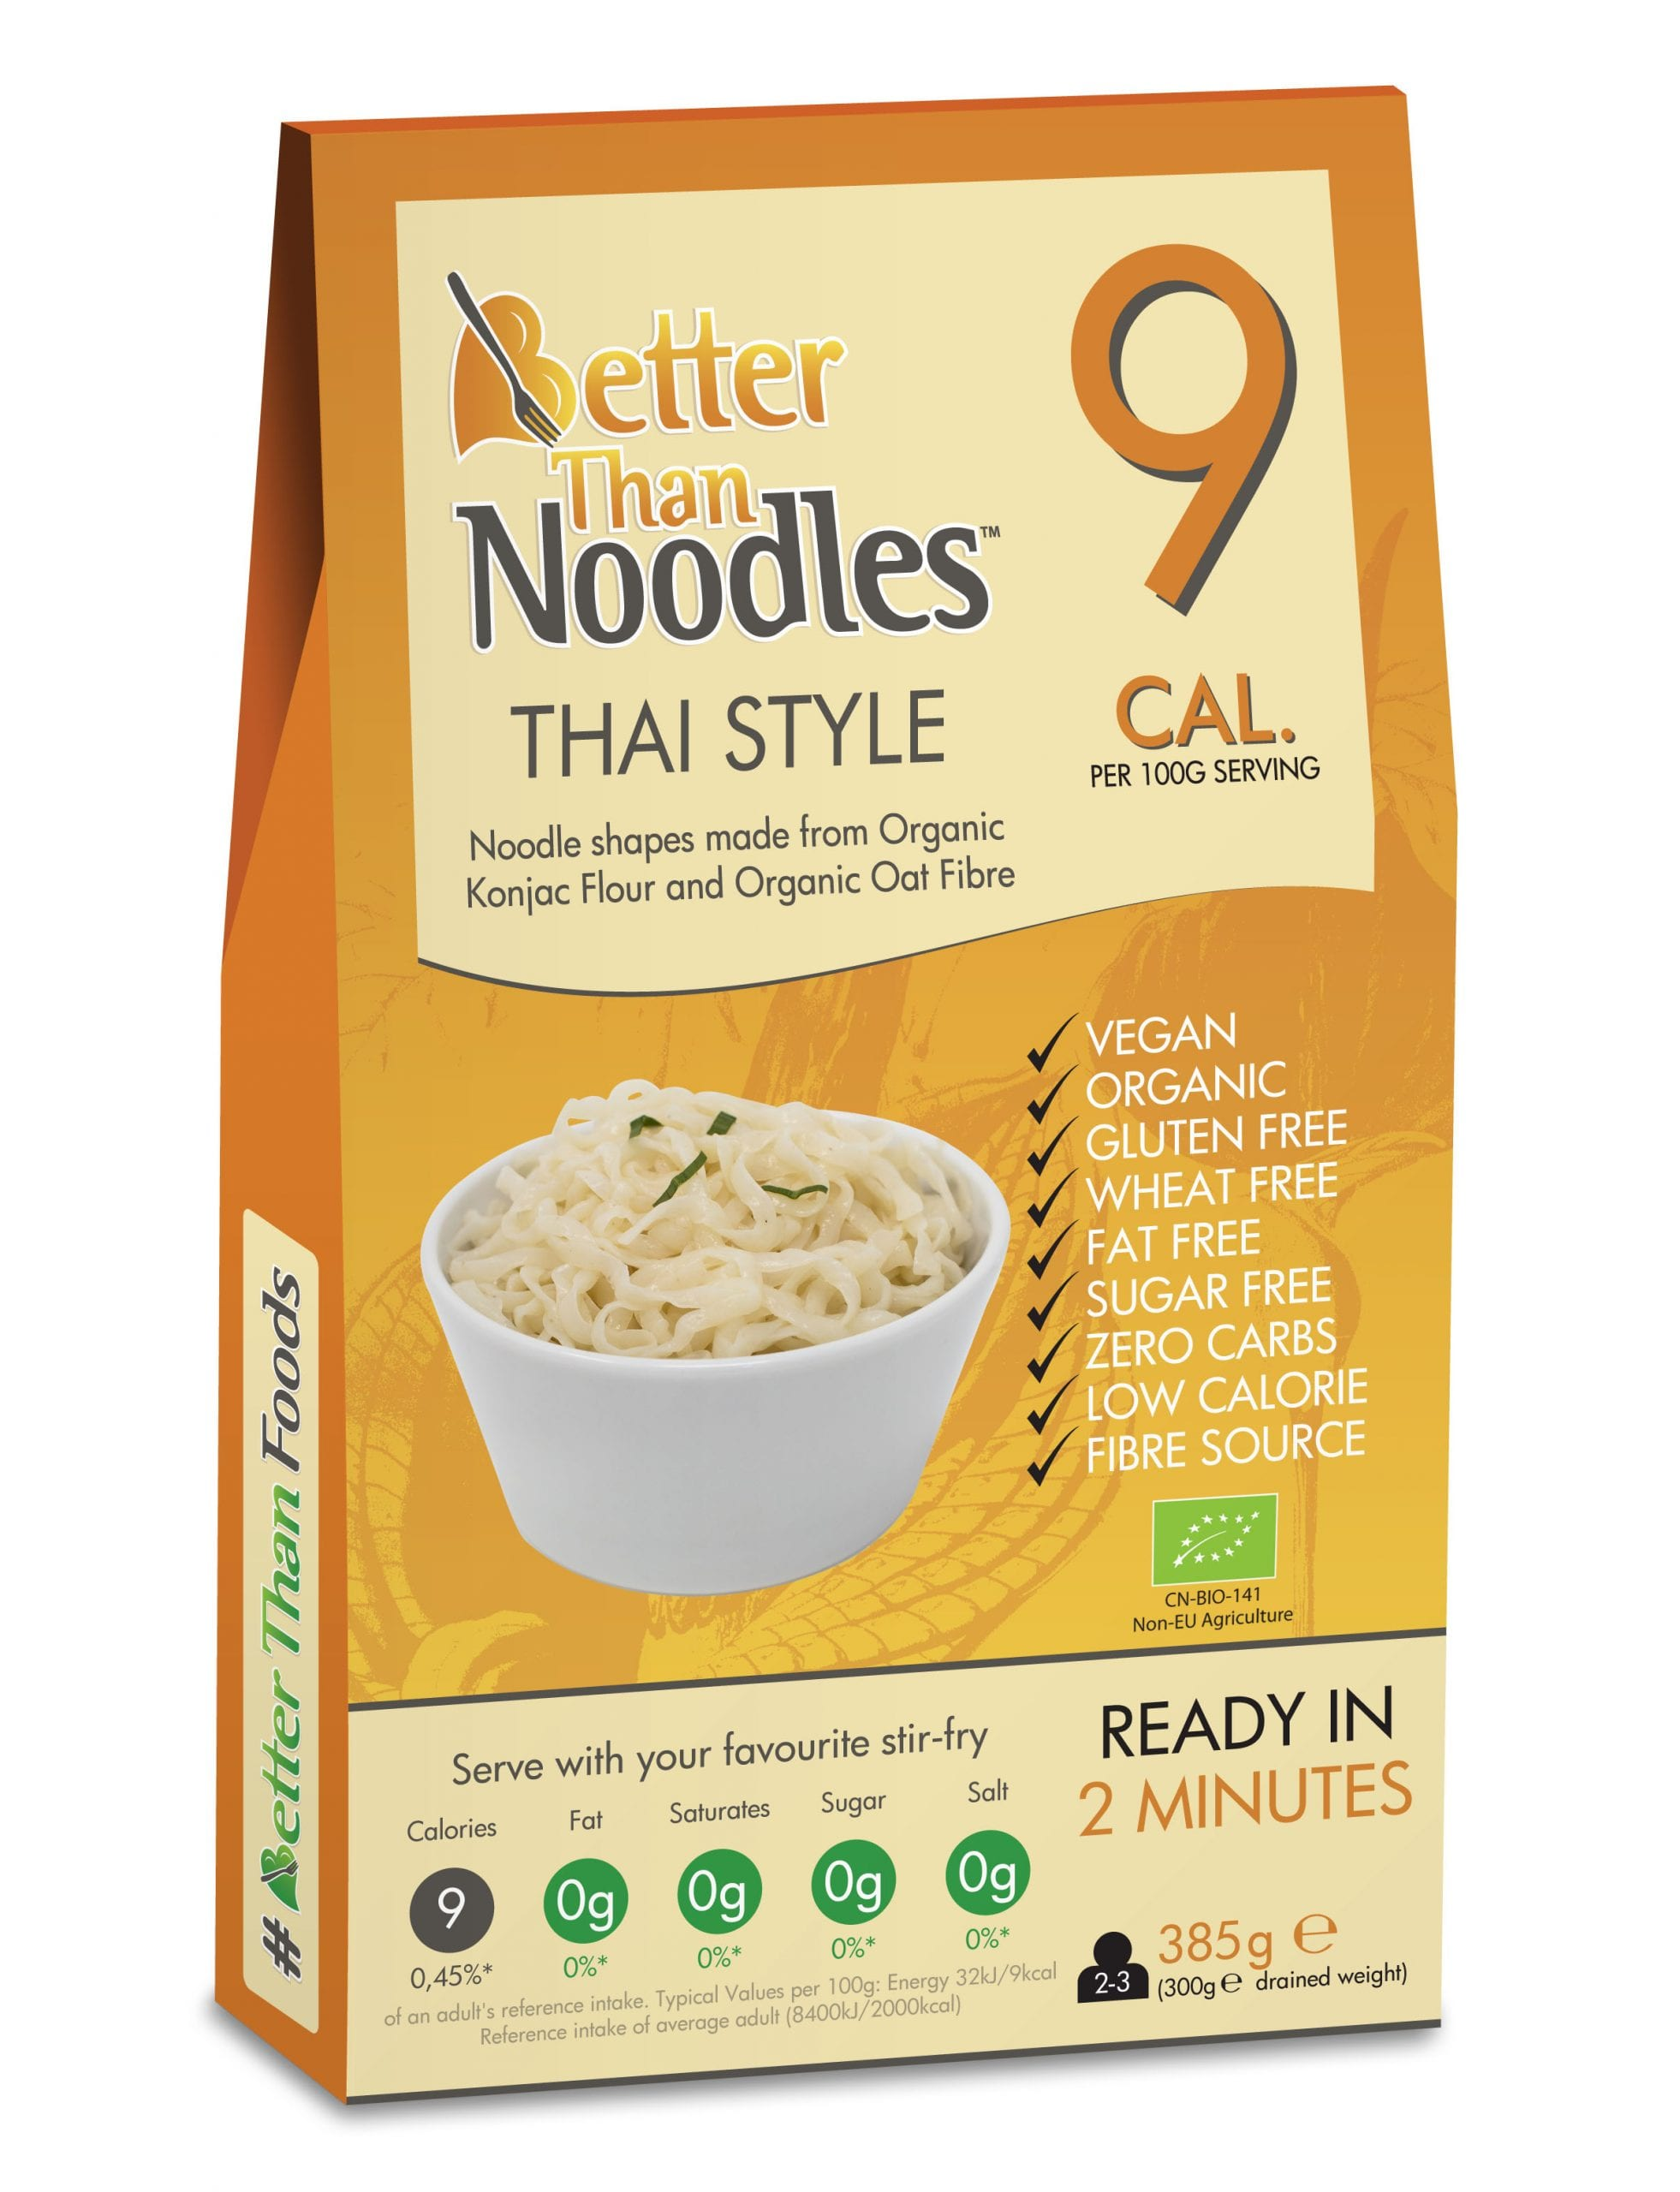 Better Than Thai Style Noodles - LCHF - Keto - Low Carb